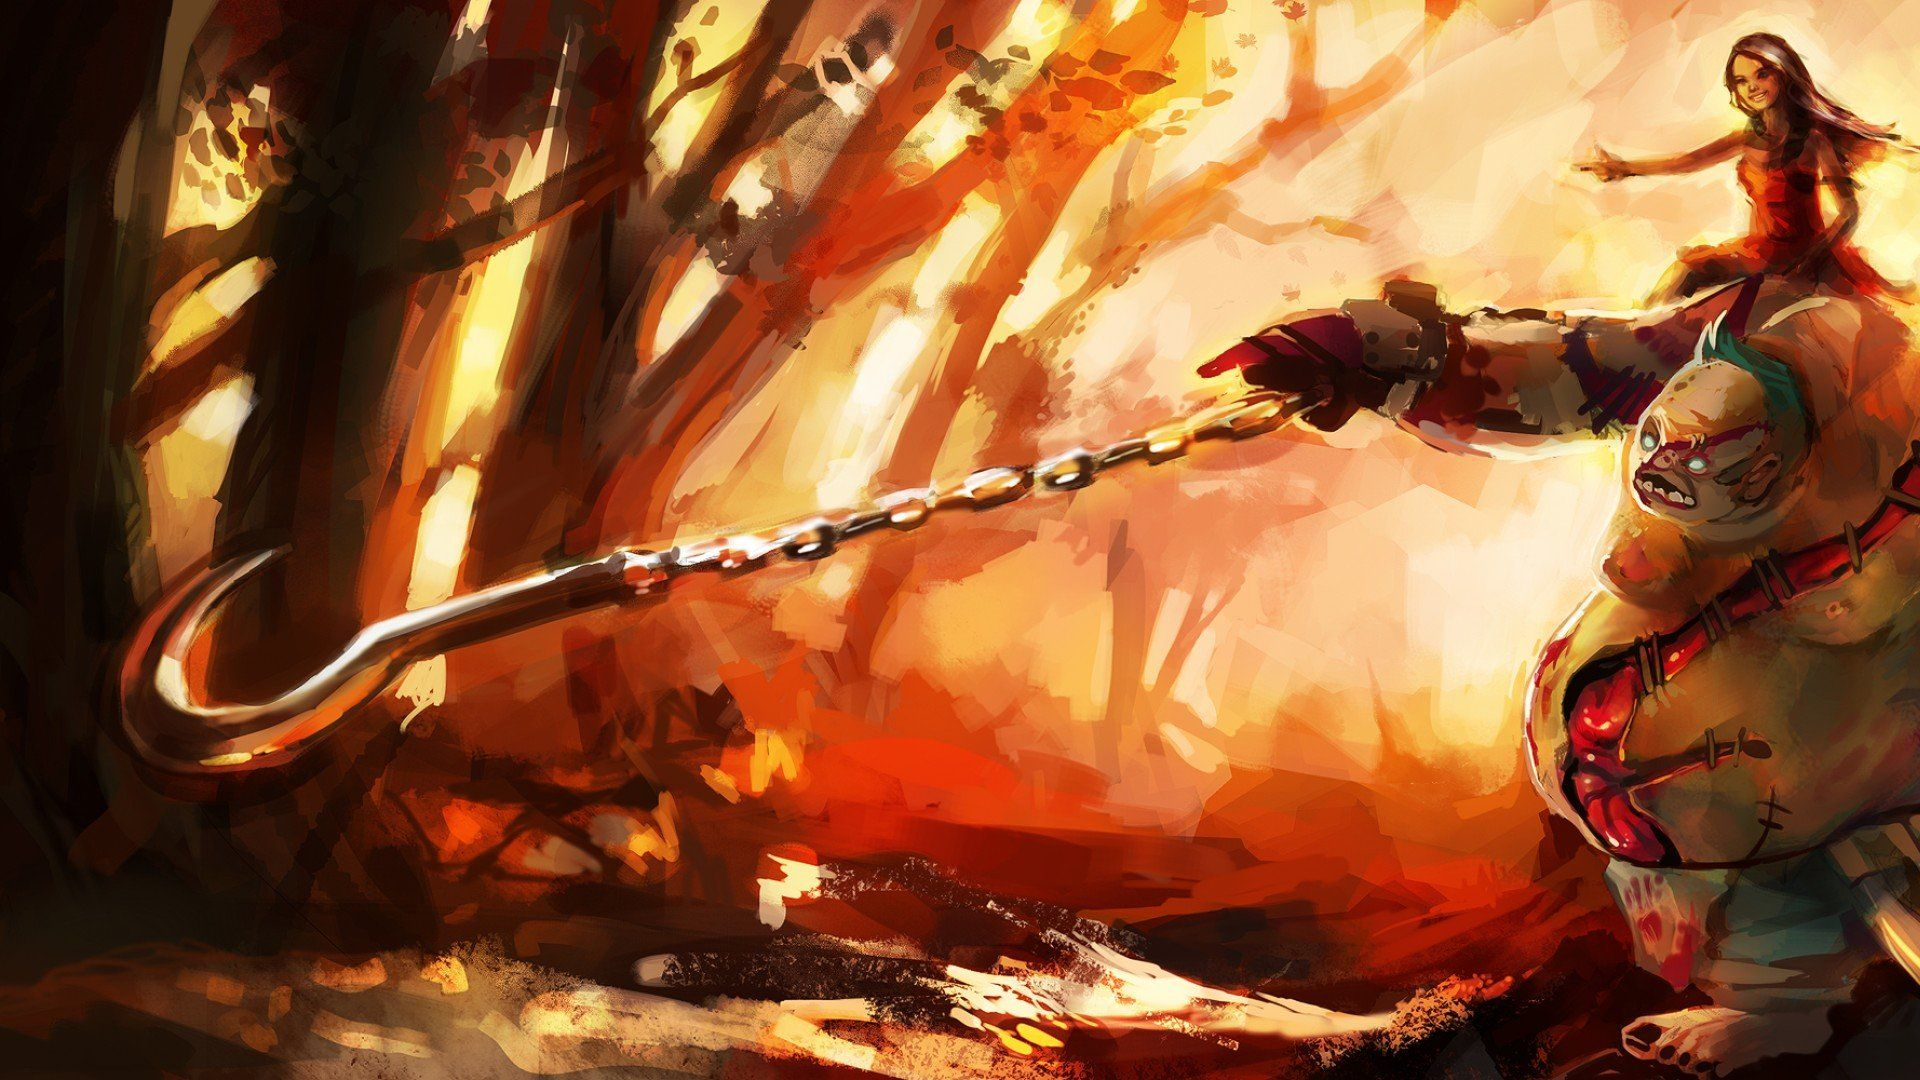 Dota  Pudge Wallpaper P Click Wallpapers Dota  Wallpaper Games Concept